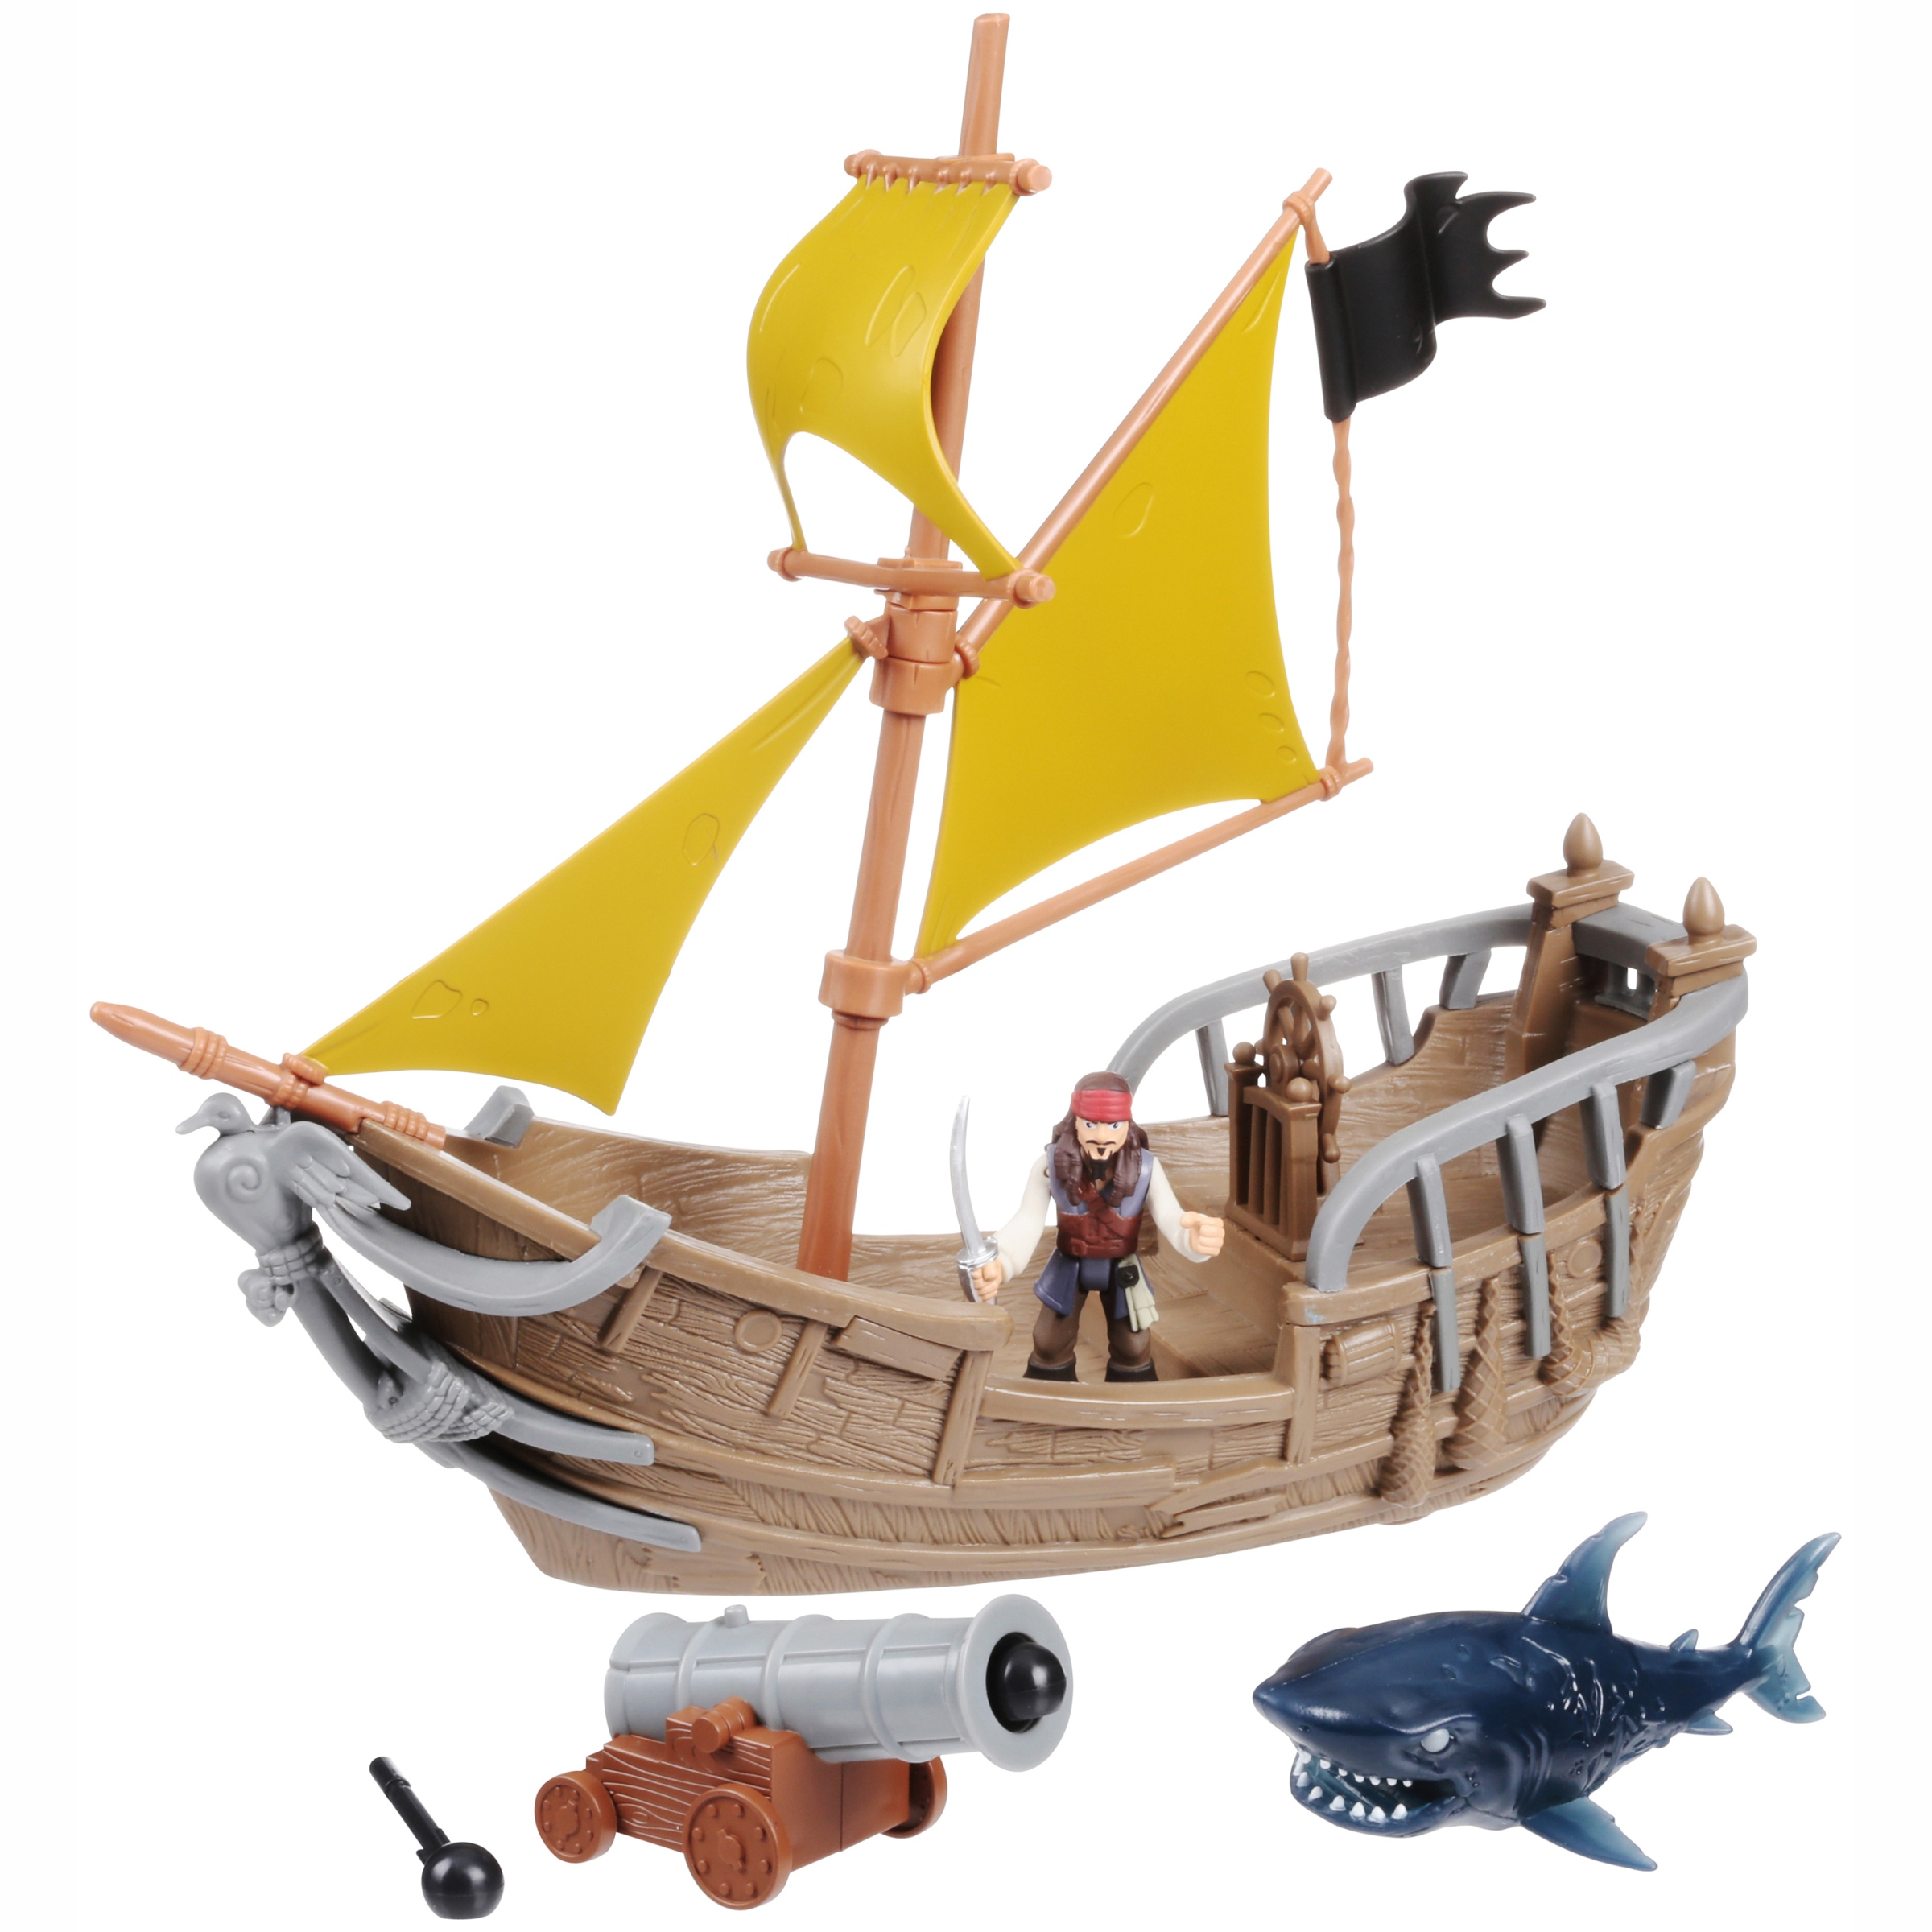 Disney Pirates of the Caribbean Dead Men Tell No Tales Jack's Pirate Ship Playset 6 pc Pack